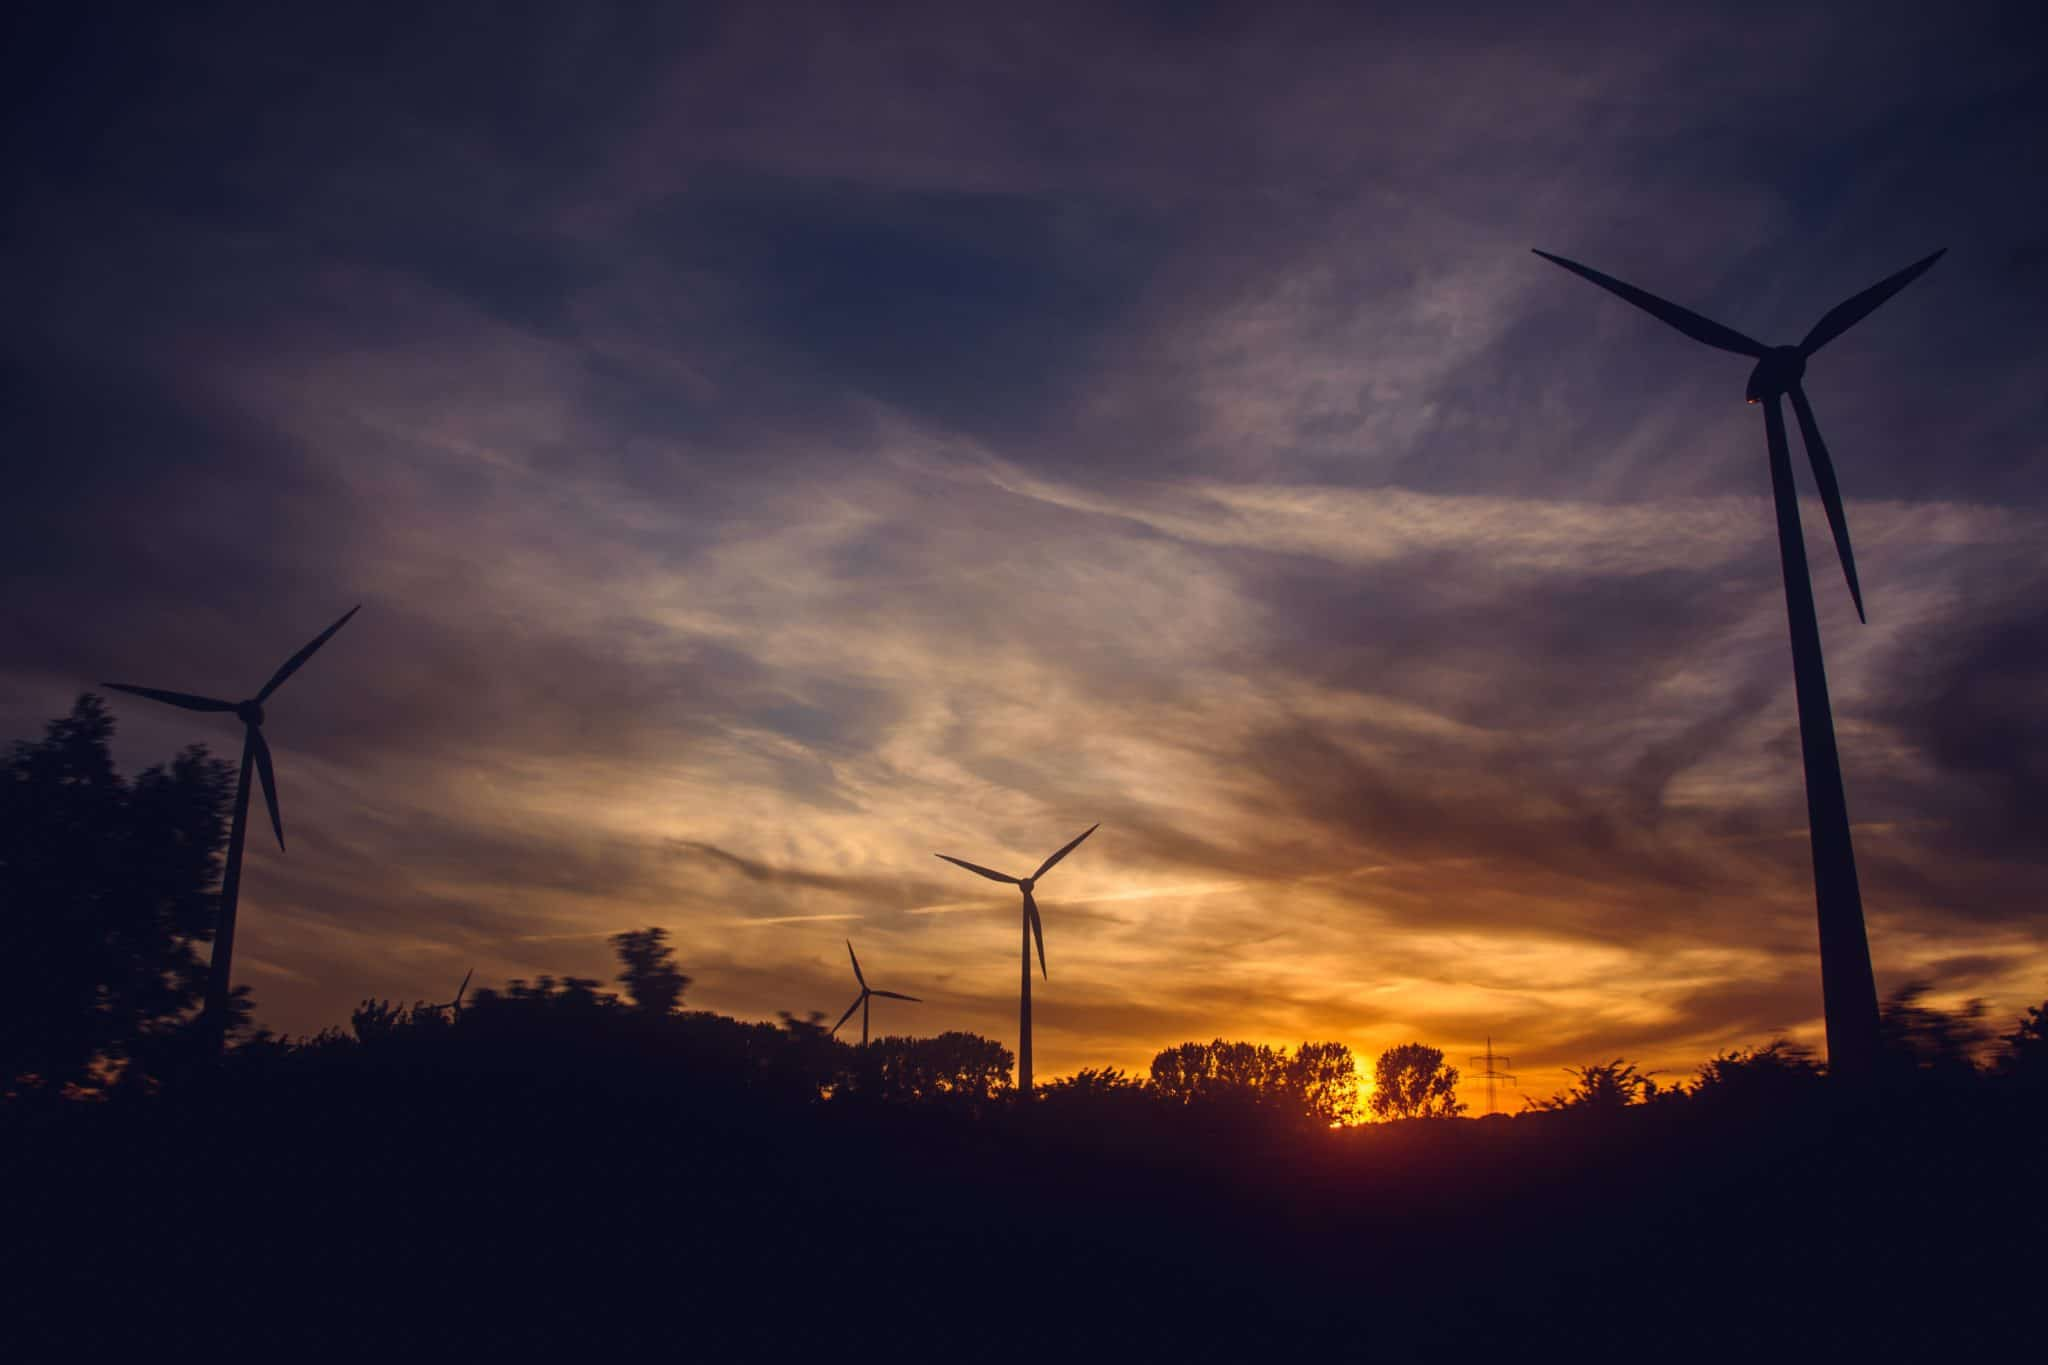 Wind farm at dusk - Photo by Irina Iriser from Pexels